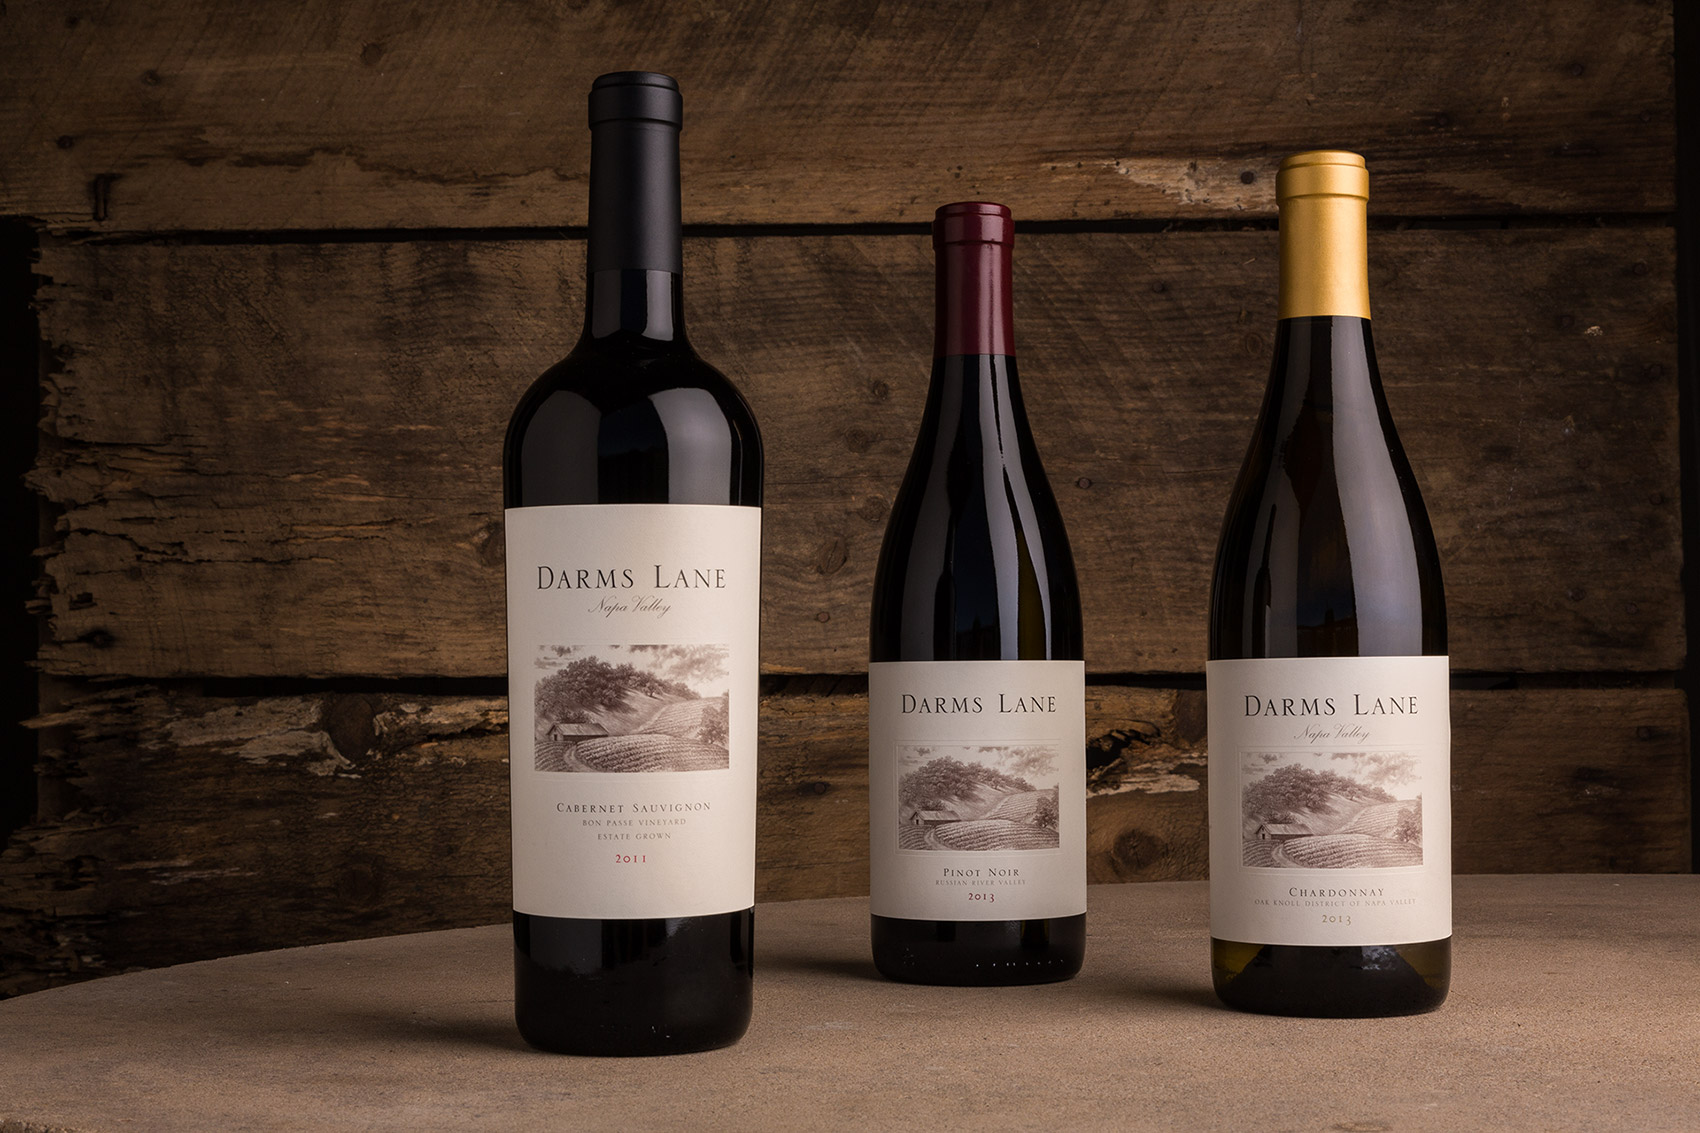 Darms Lane Winery - Products Lineup. Napa Valley